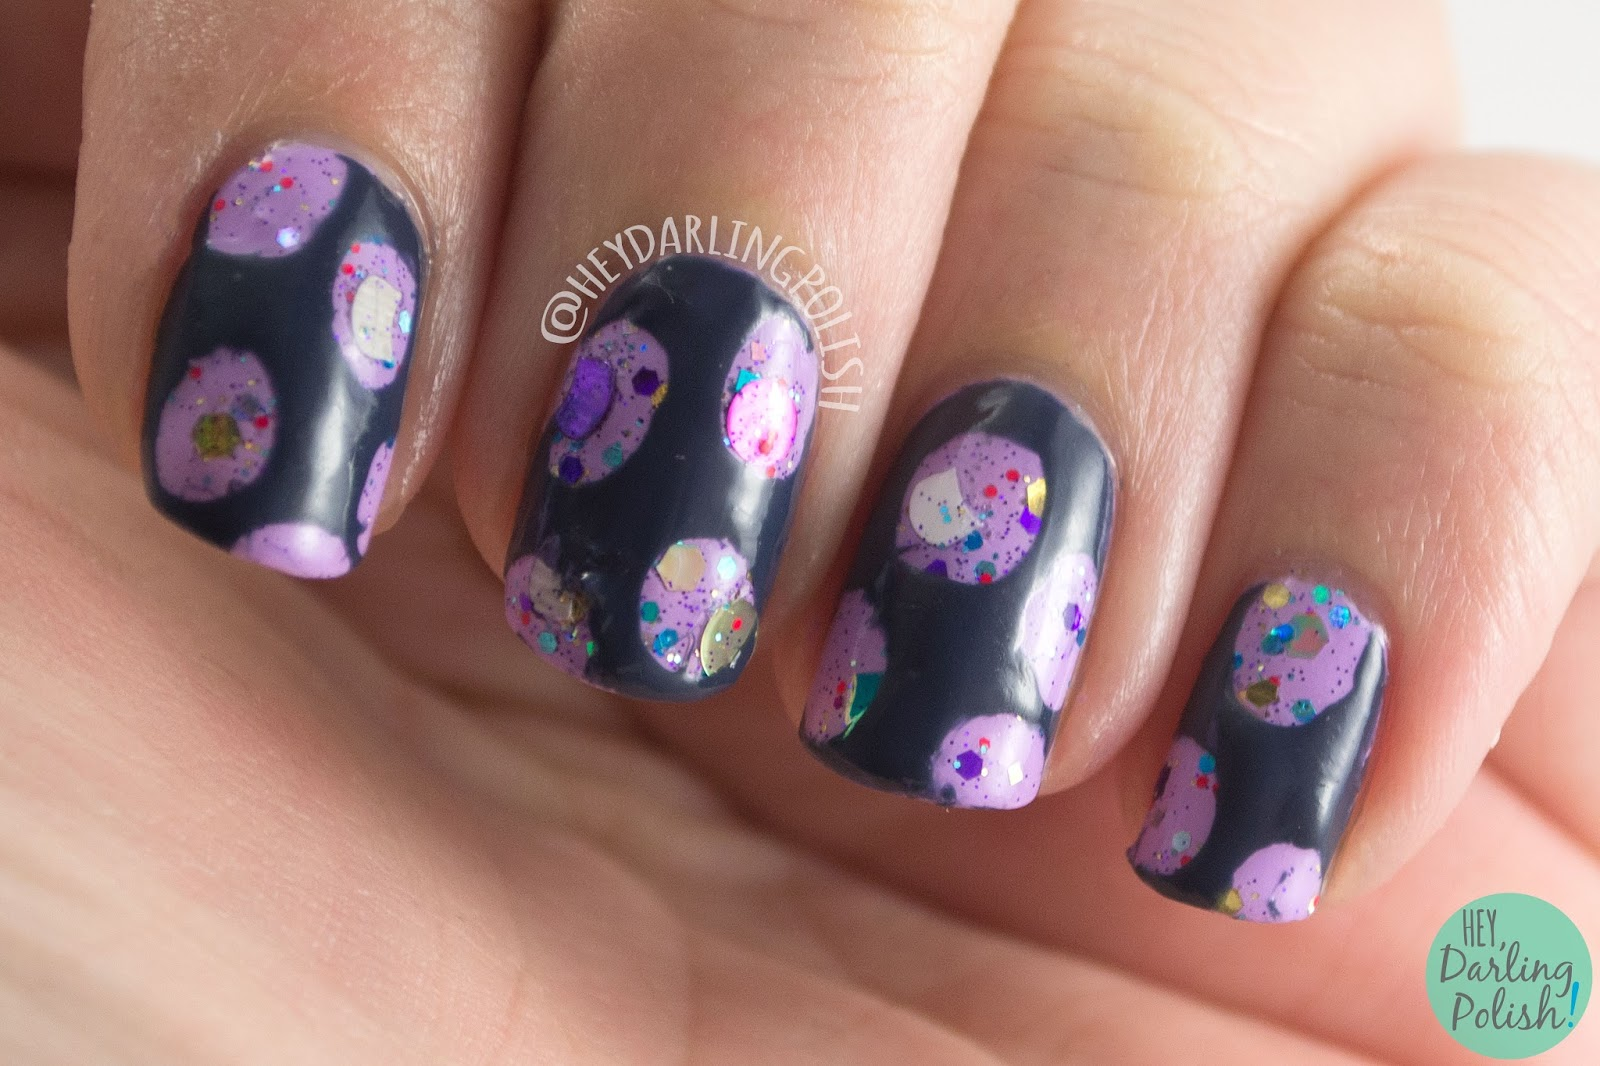 nails, nail art, nail polish, hey darling polish, ice polish, indie polish, polka dots, glitter, meow-do gras